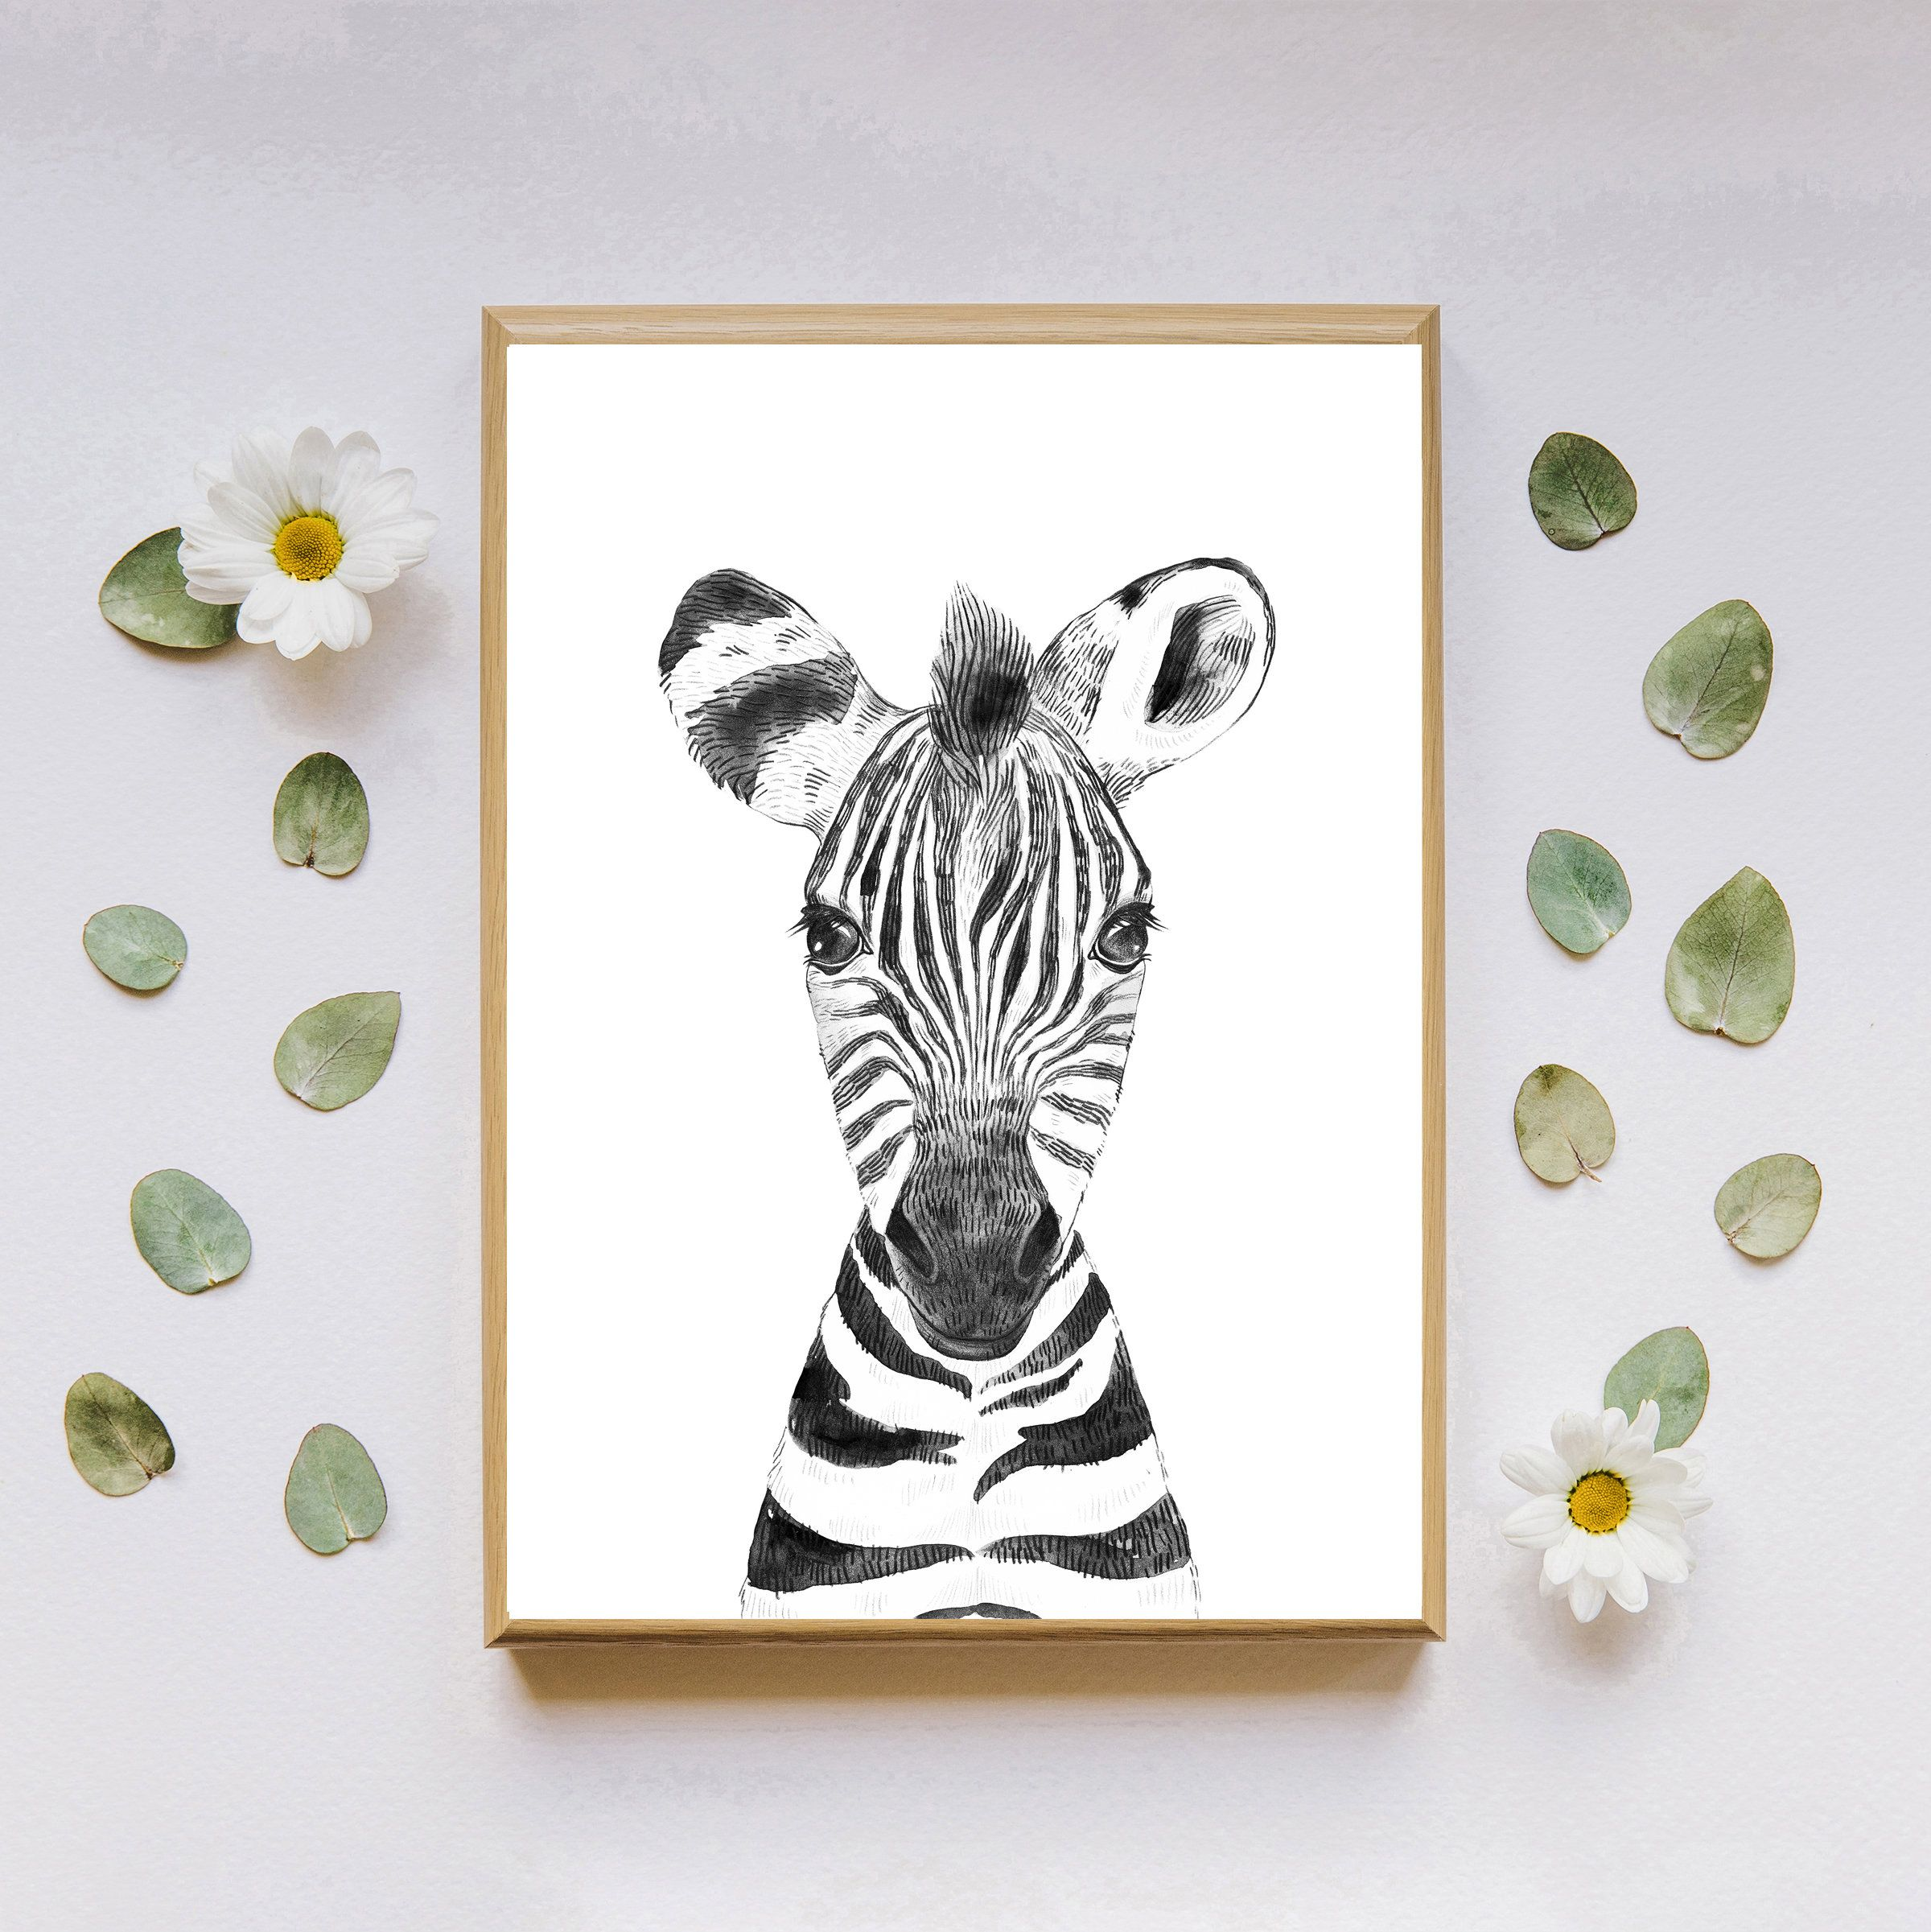 Zebra Nursery Wall Art Digital Download Nursery Decor Baby Animal Decor Printable Wall Art Zebra Print Safari Print Zebra Wall Decor Arte De Pared Imprimible Decoracion De Animales Arte Para Guarderia